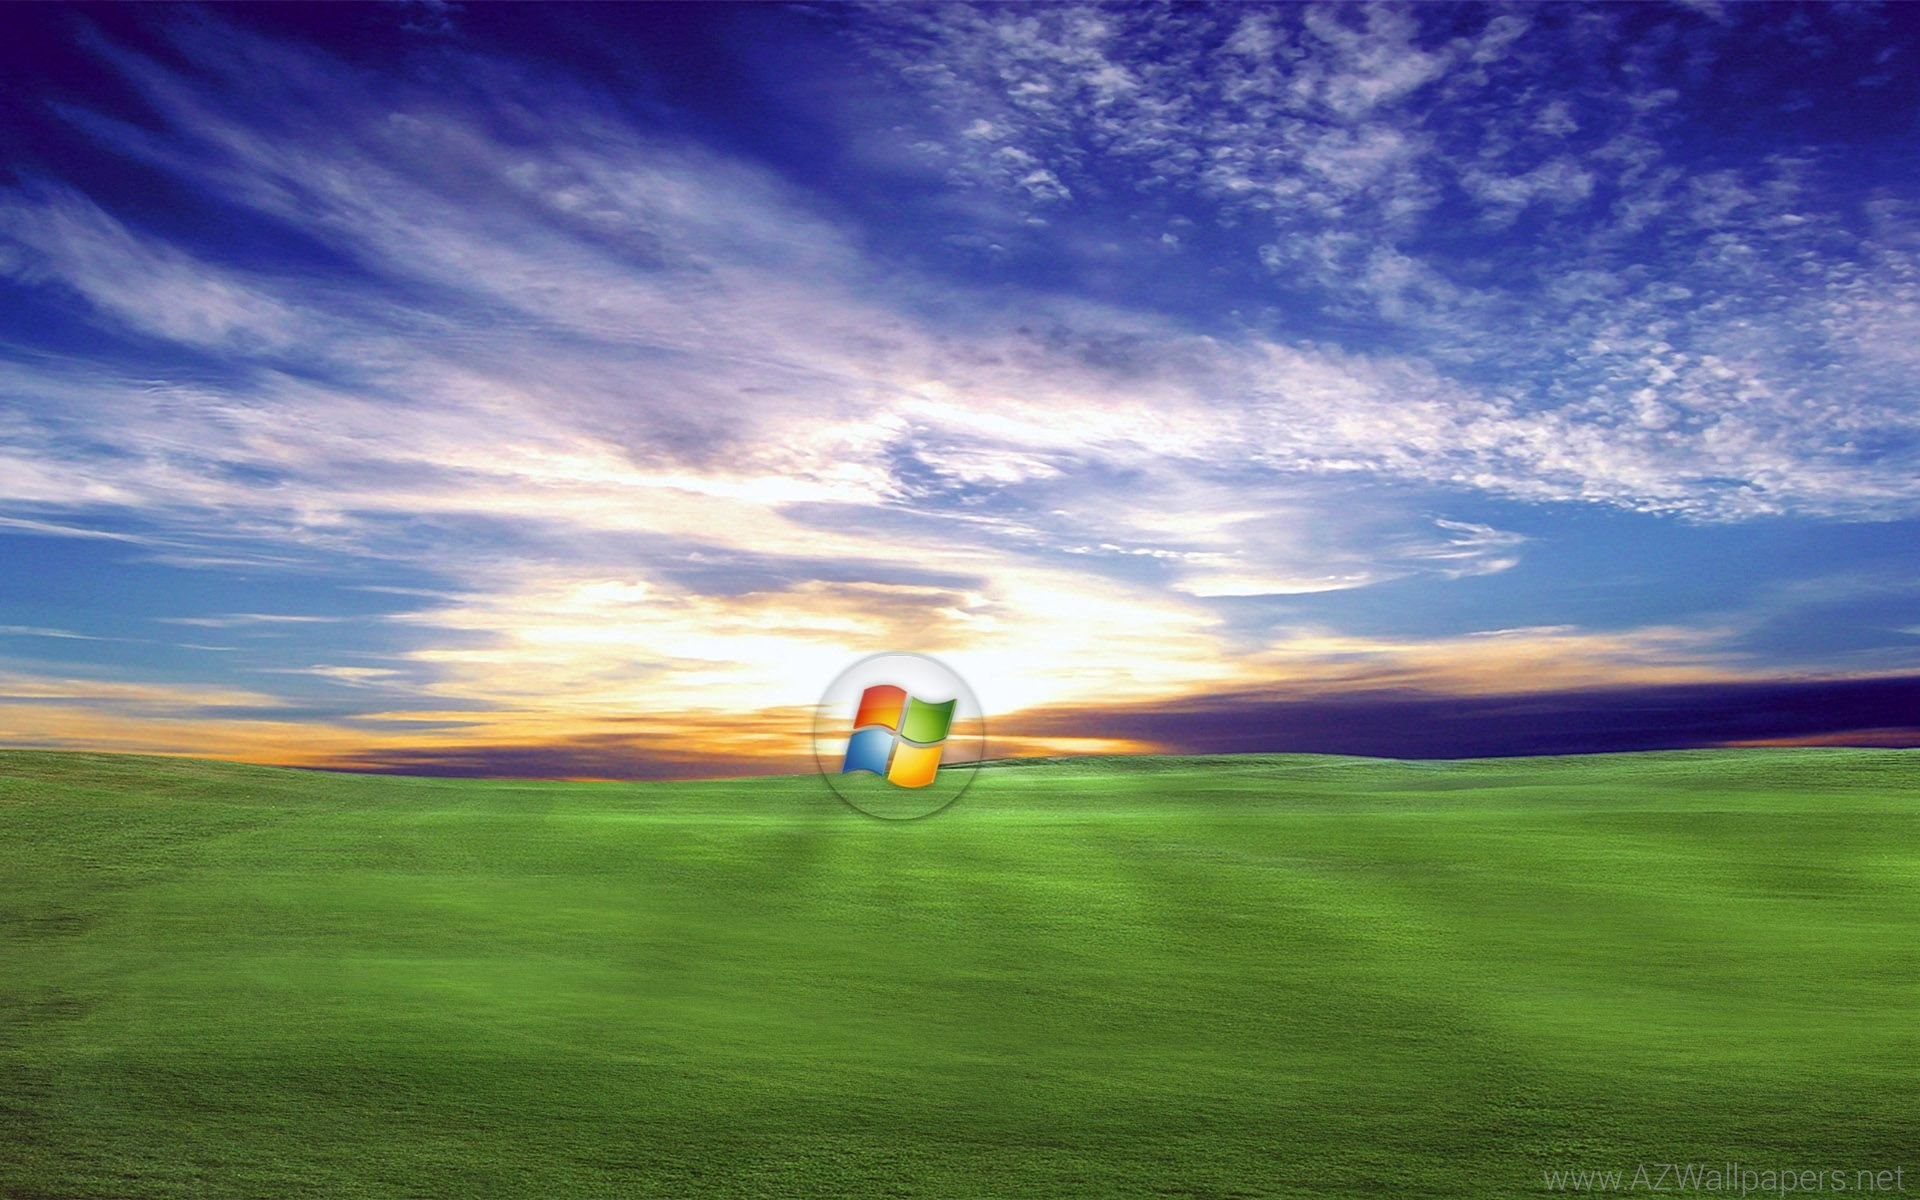 Windows Xp Wallpaper Hd